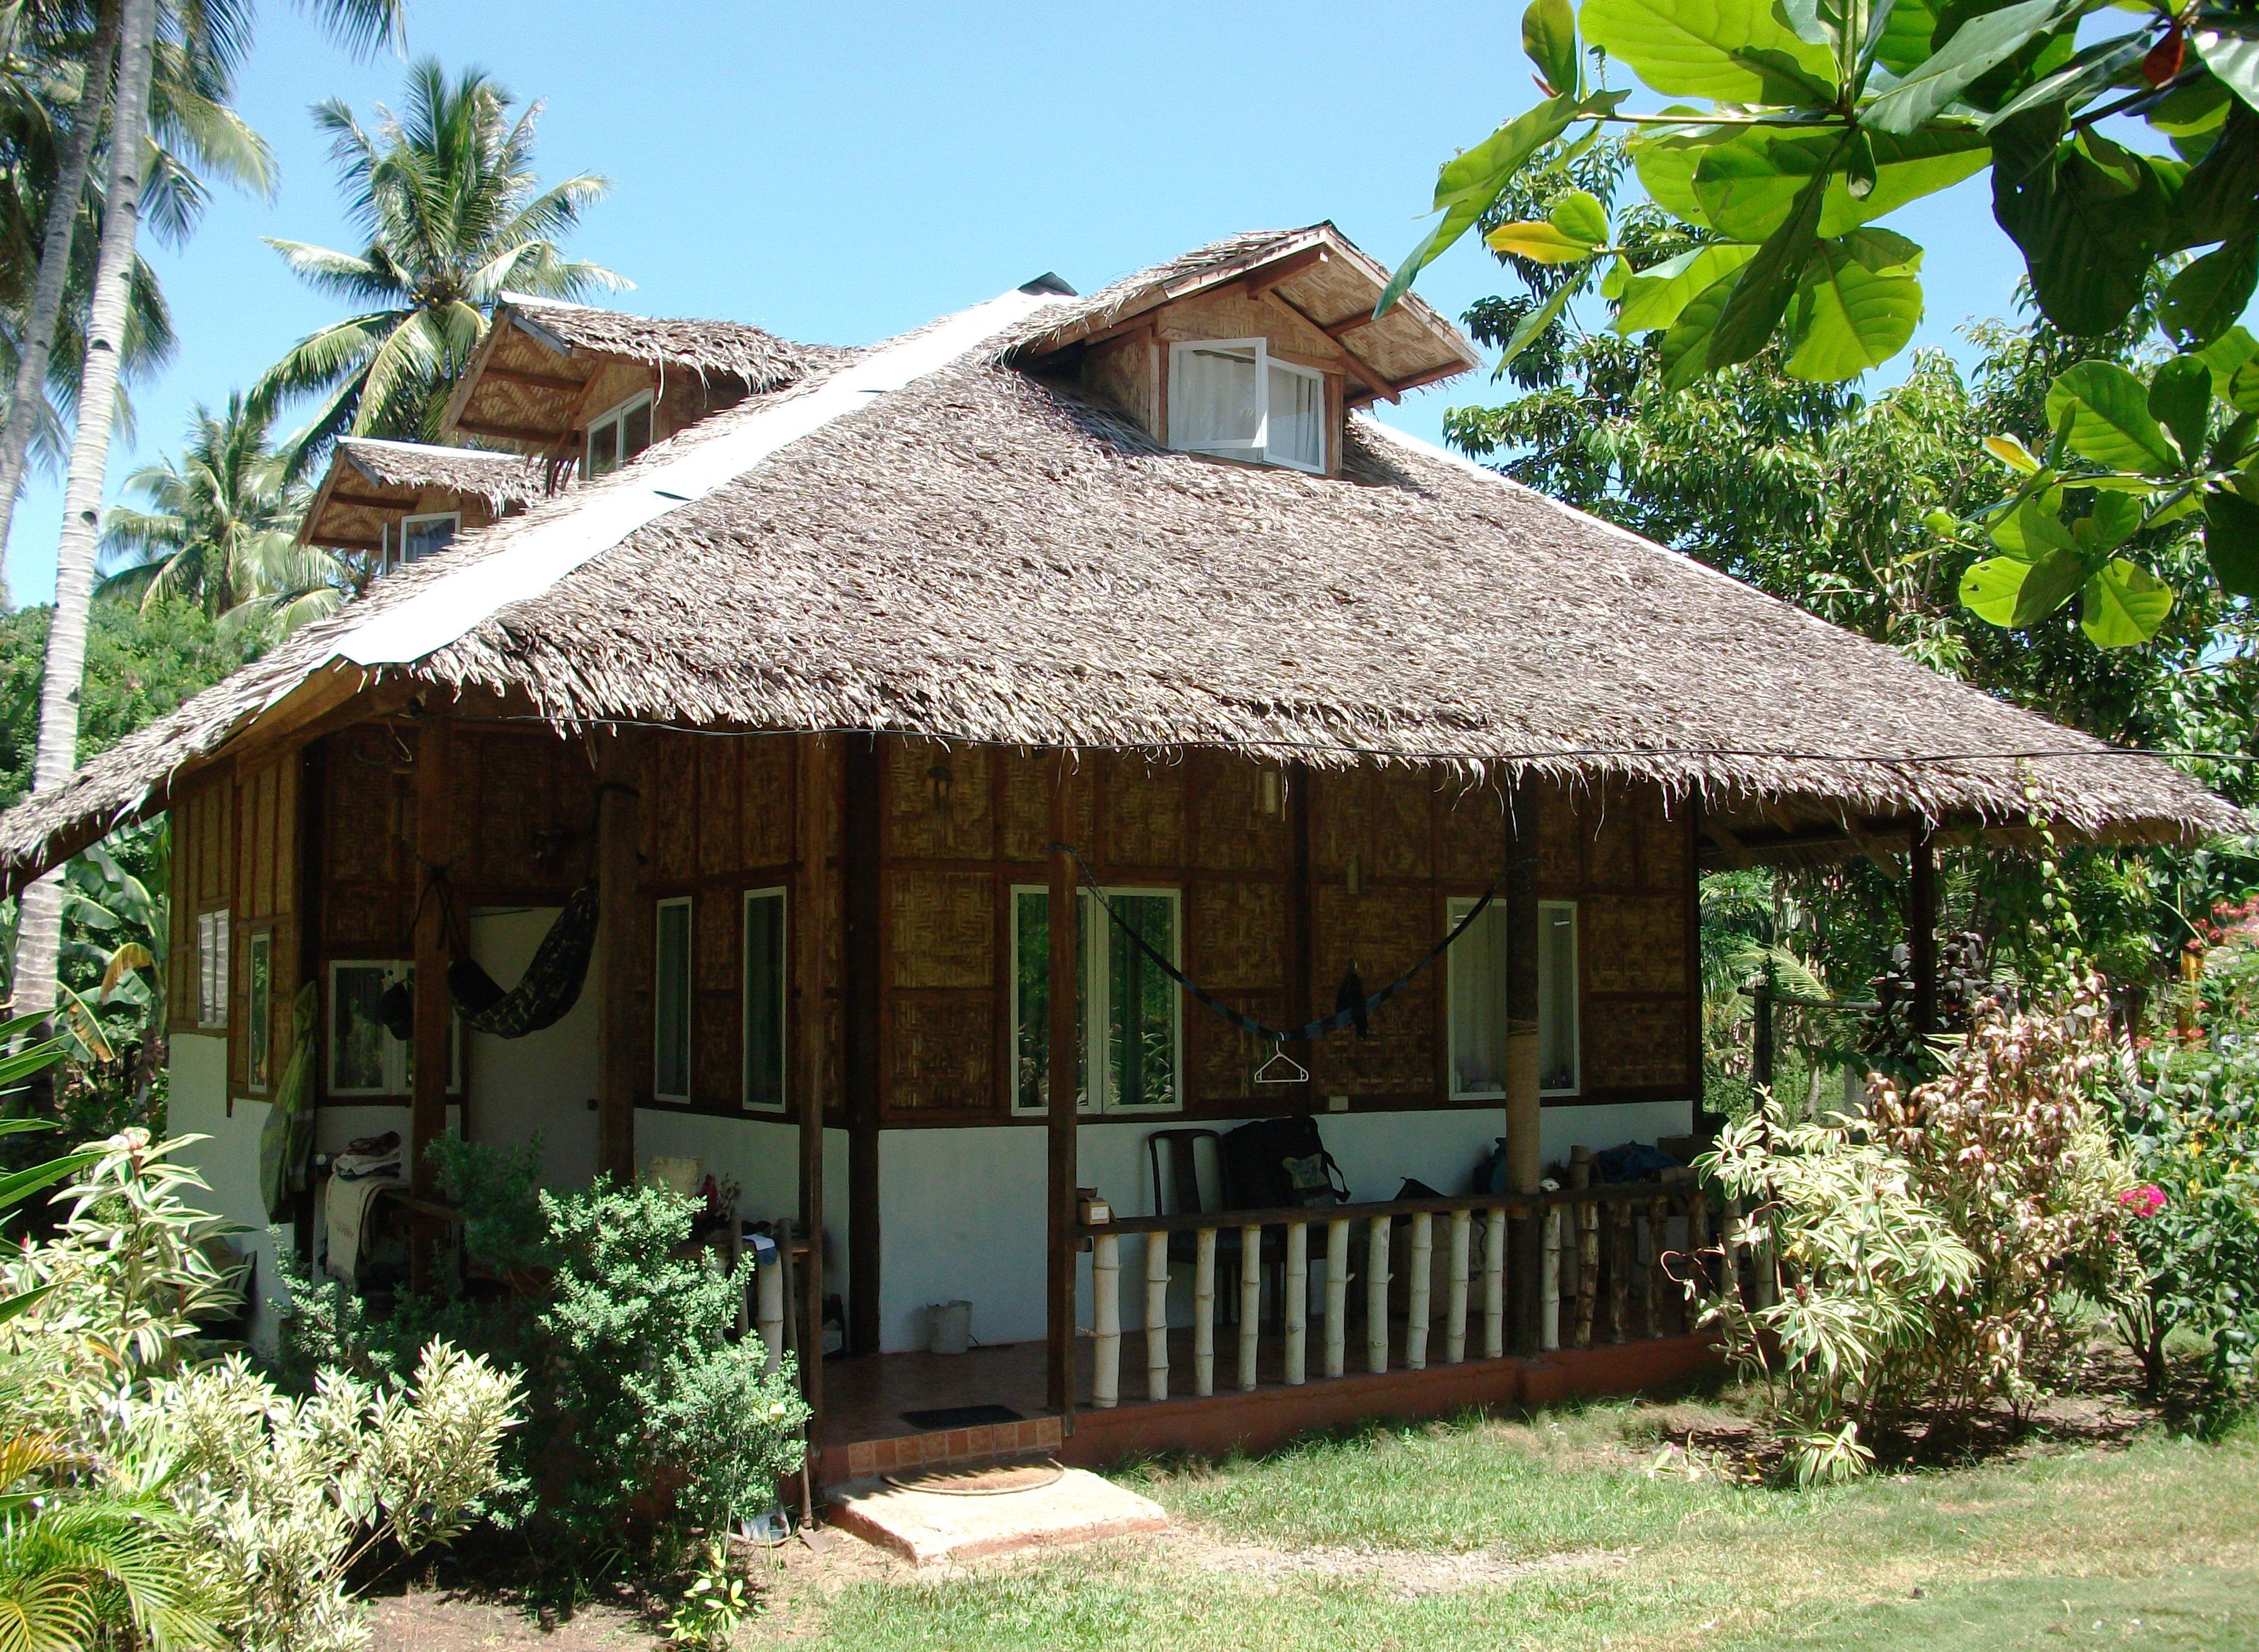 Building 101 The Native House Design Of The Philippines Balay